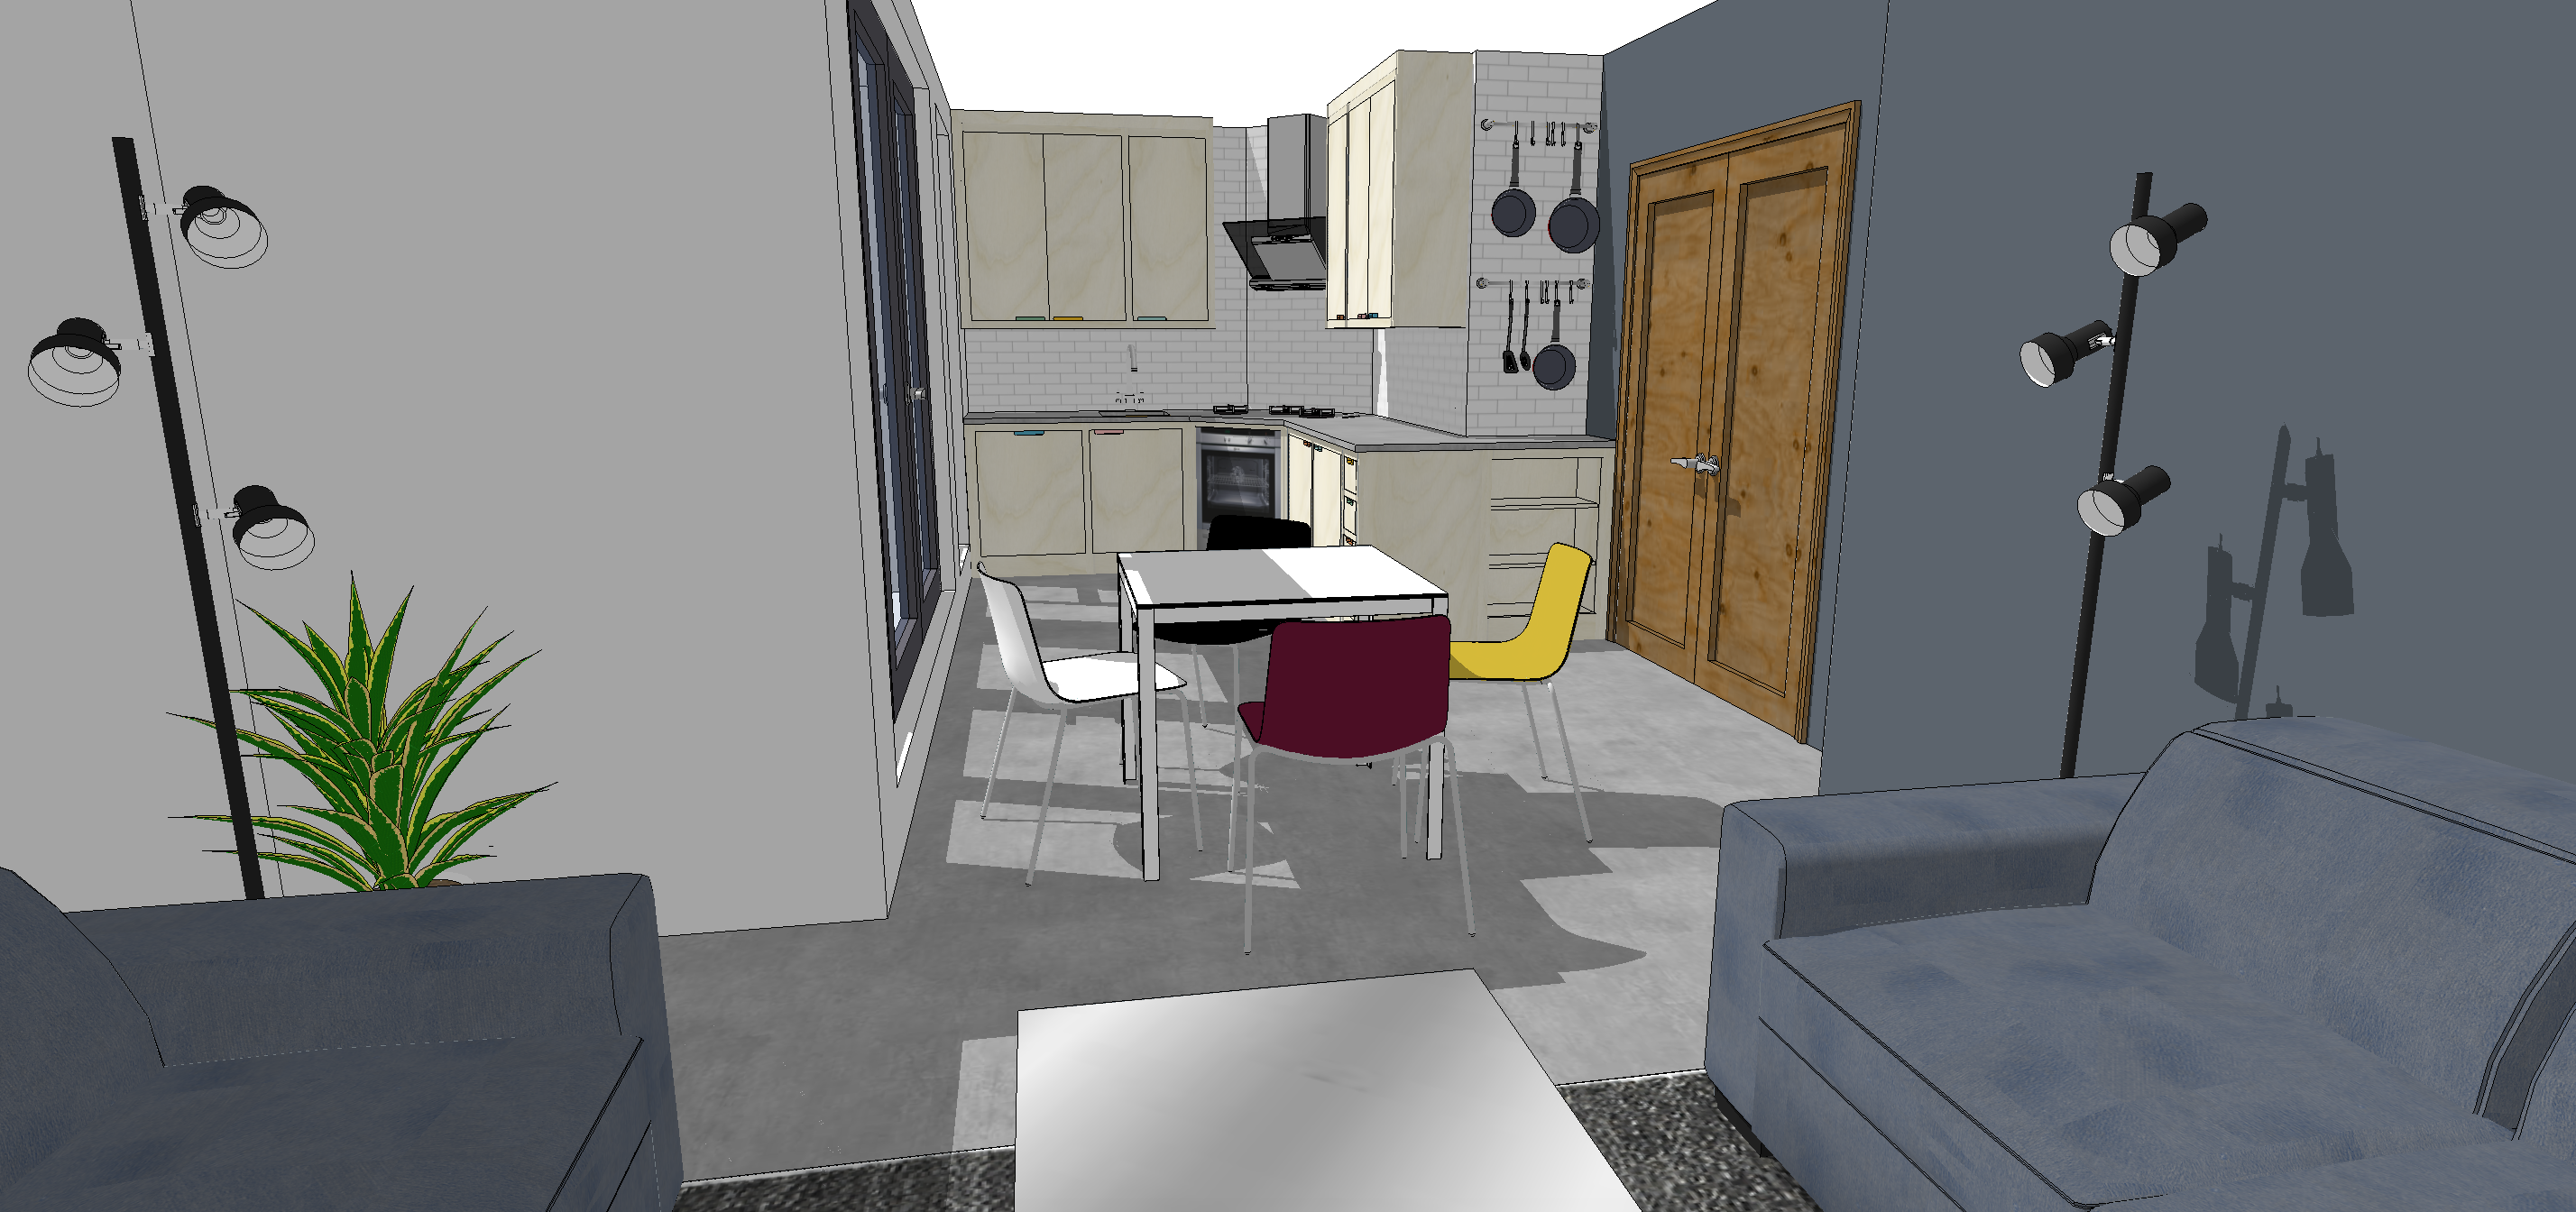 Design Example Utilising Small Kitchen Spaces Sustainable Kitchens